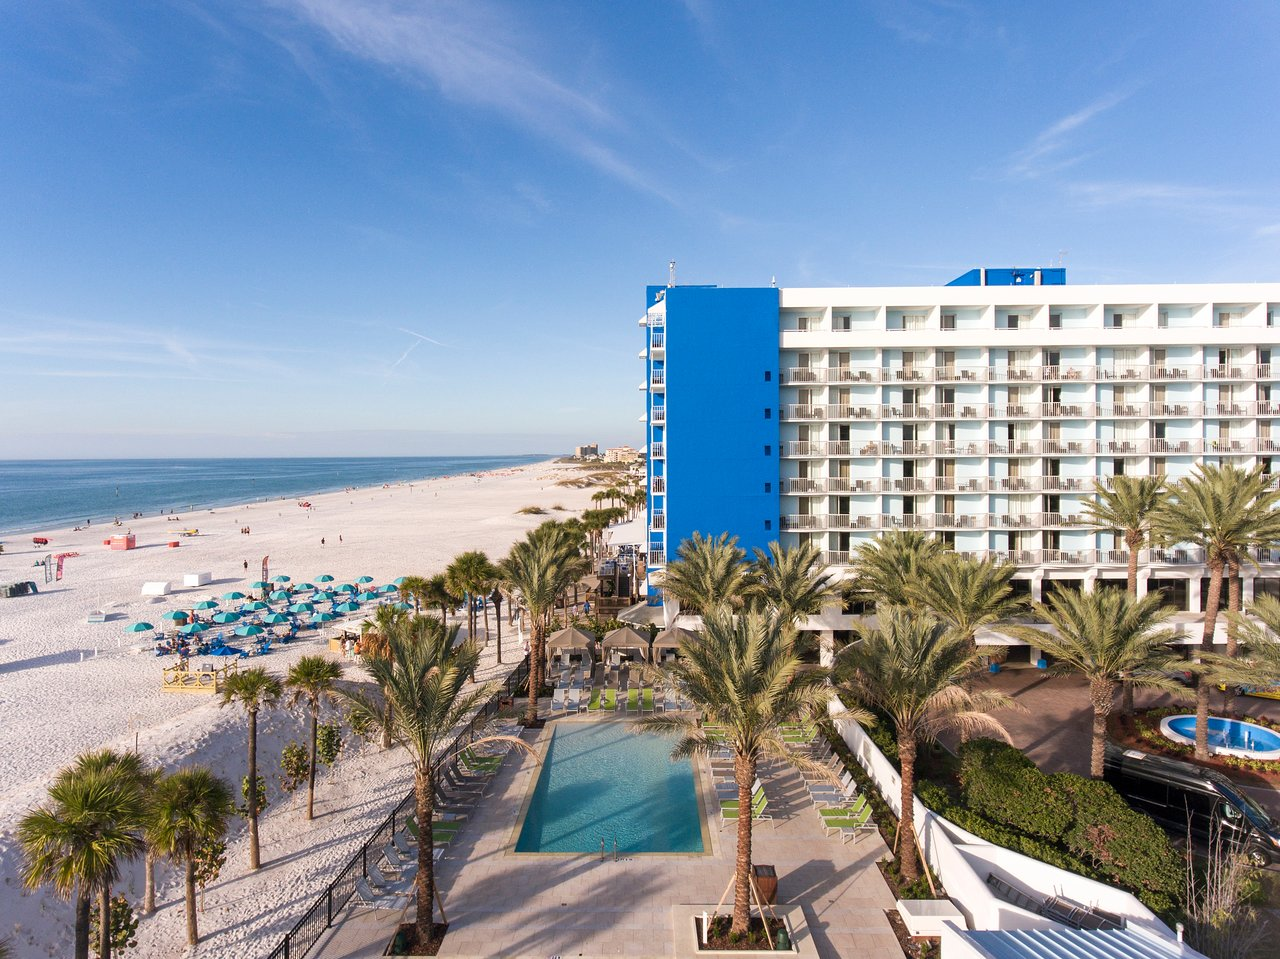 THE 5 BEST Quiet Resorts in Clearwater - Sept 2019 (with